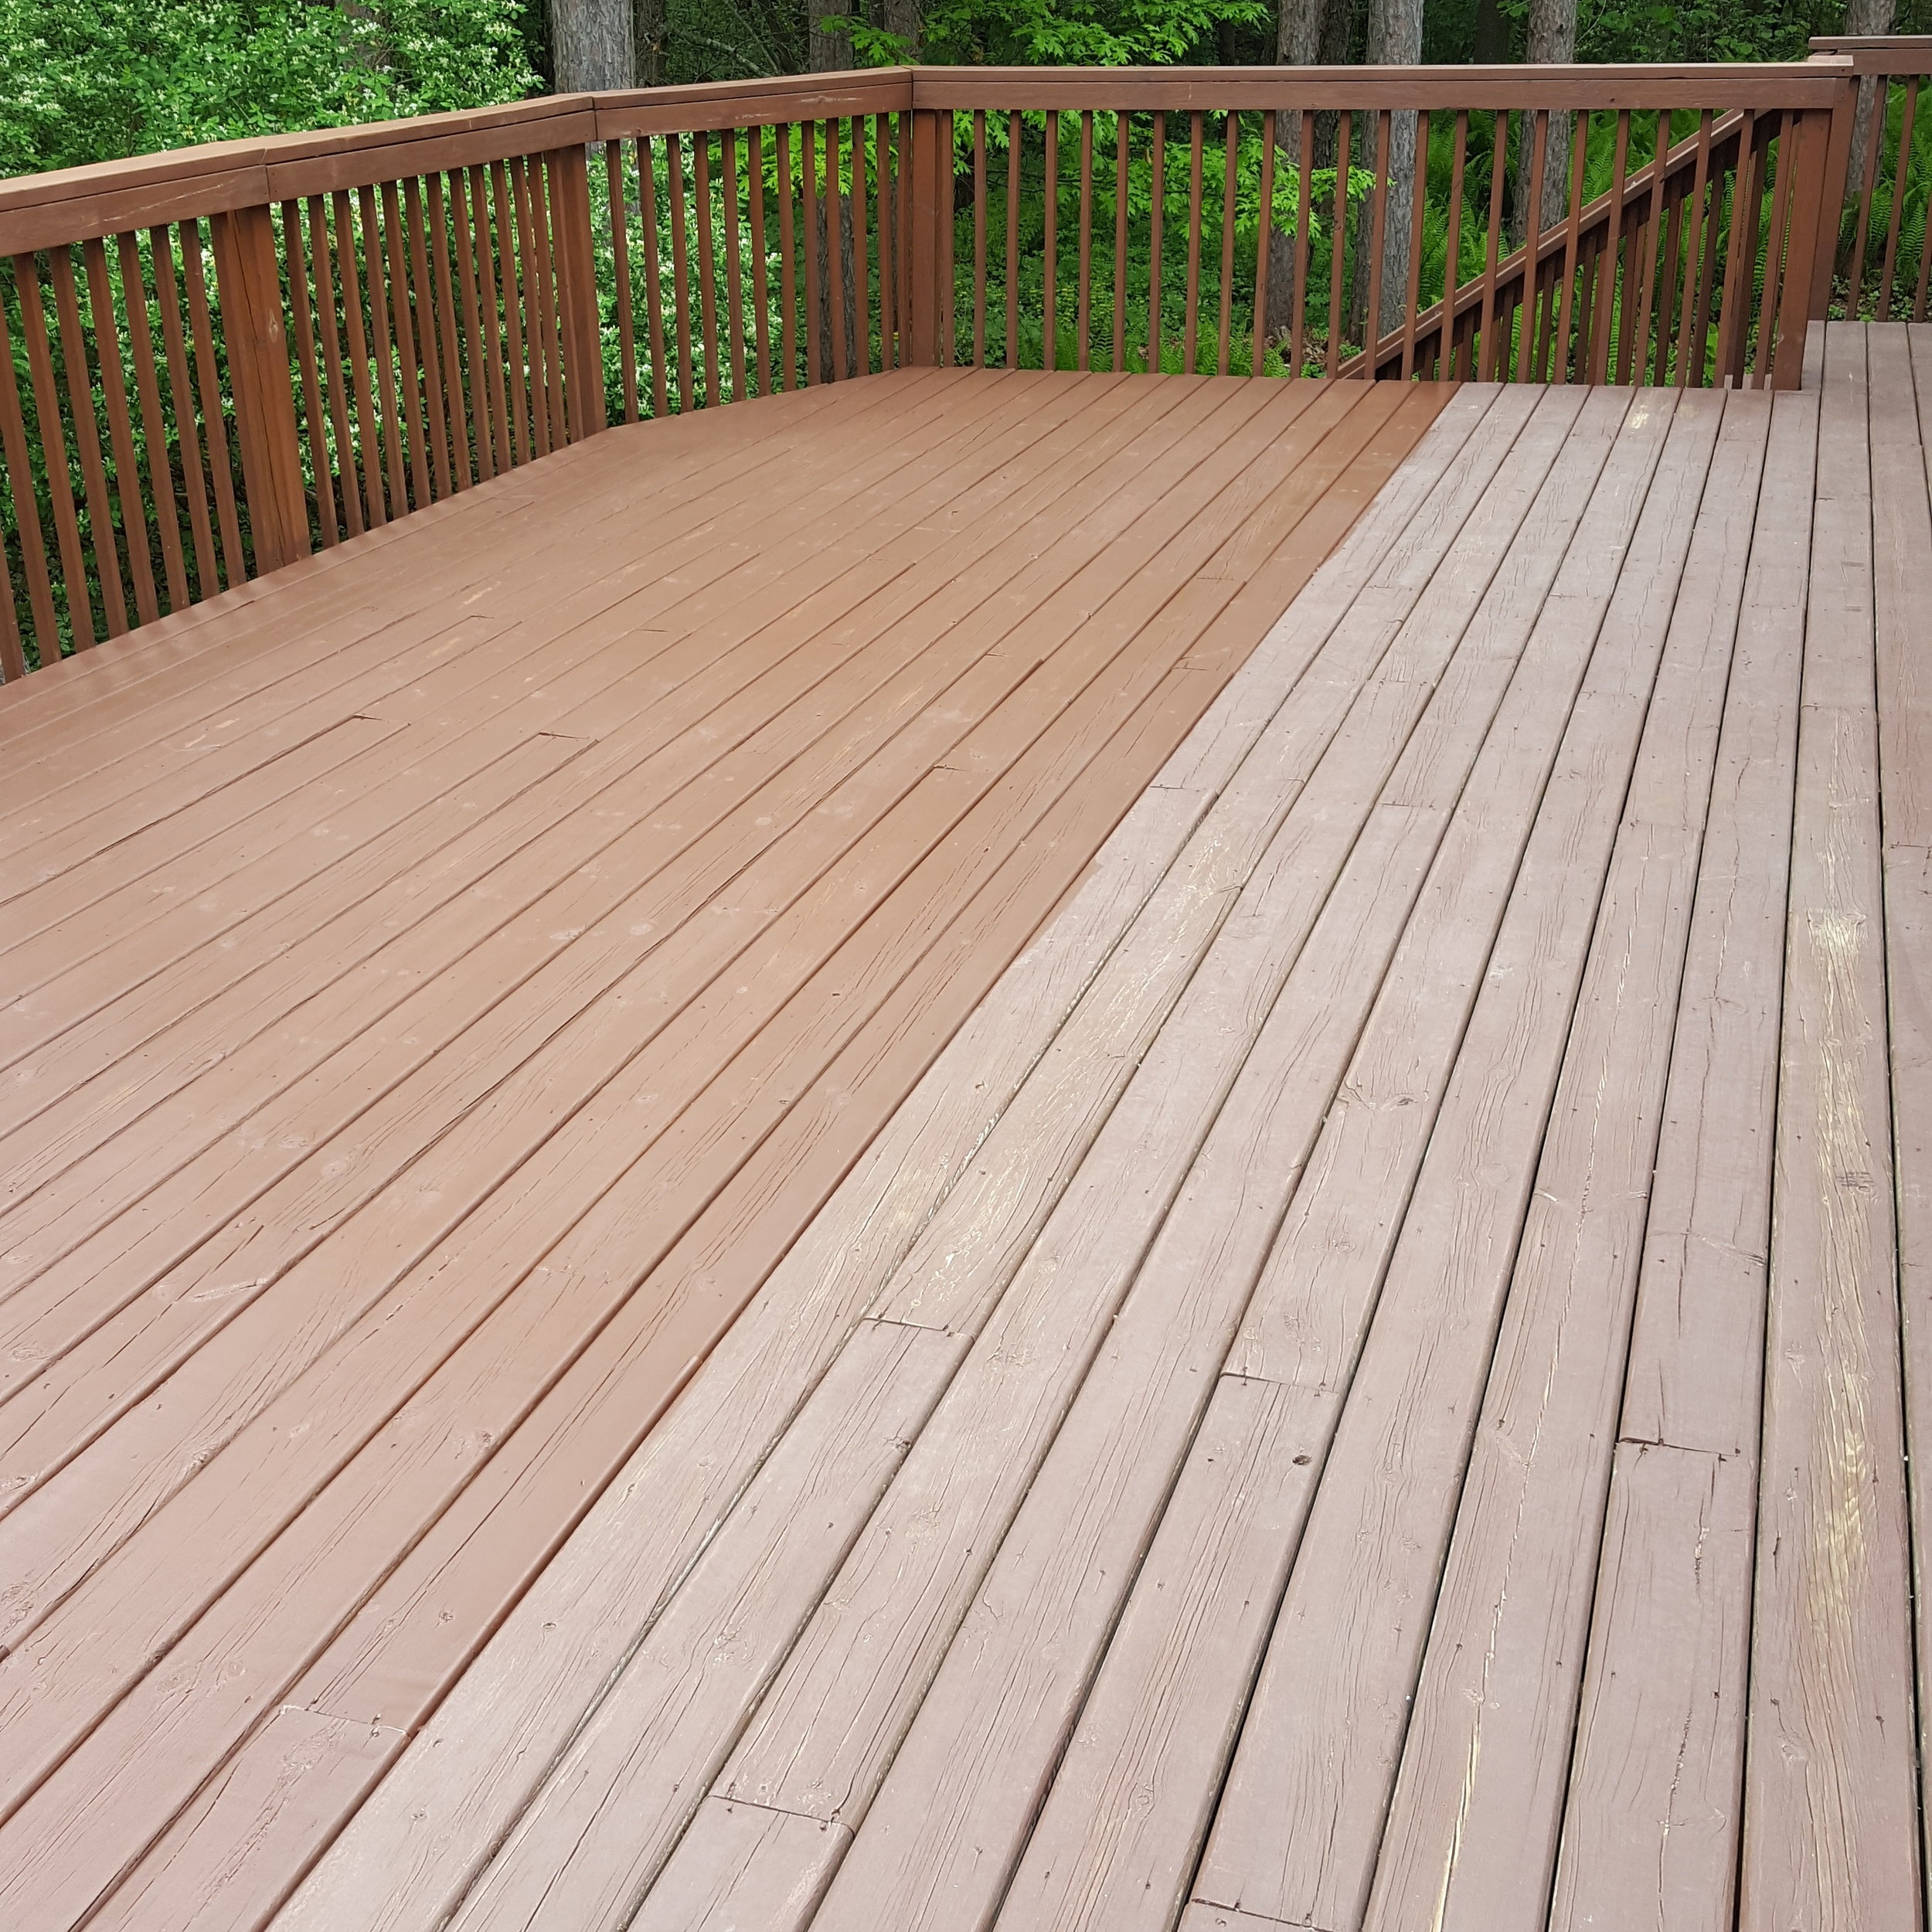 RaymondCraft_Deck_Cleaning_Before_After.jpg